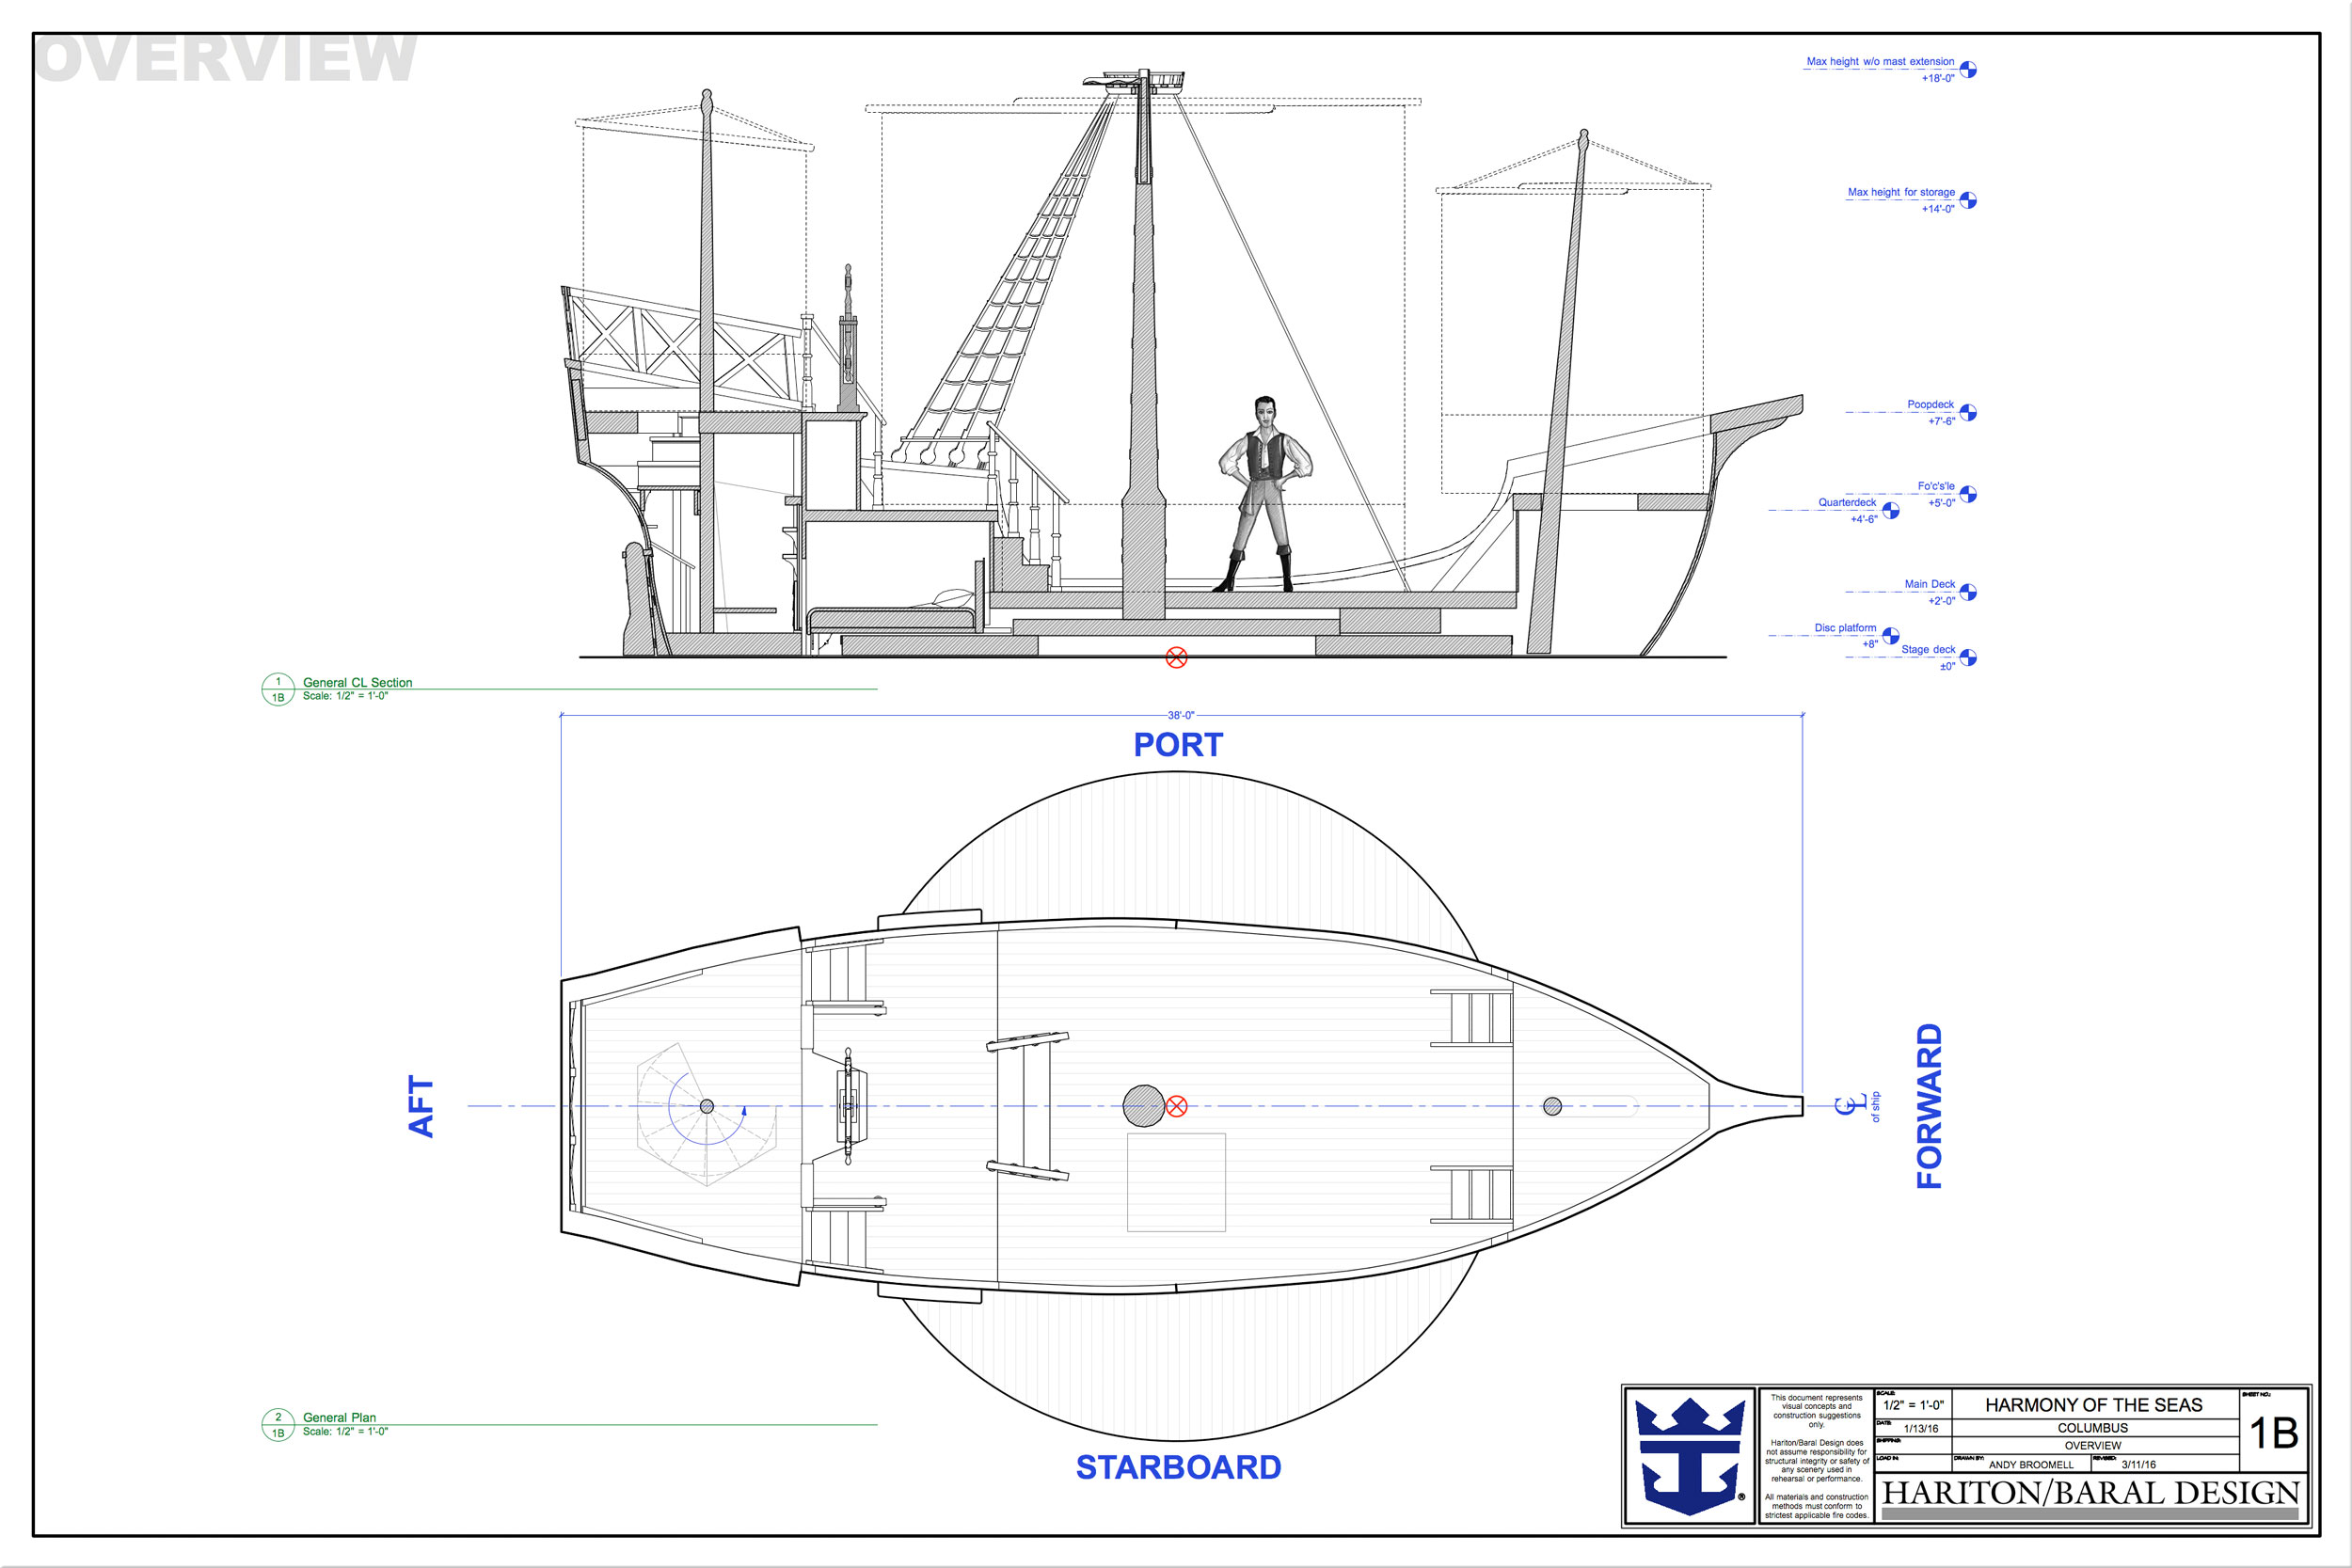 andy-broomell-drafting-columbus2-musical-vectorworks-scenic-design-scenery-plans-sailing-ship.jpg